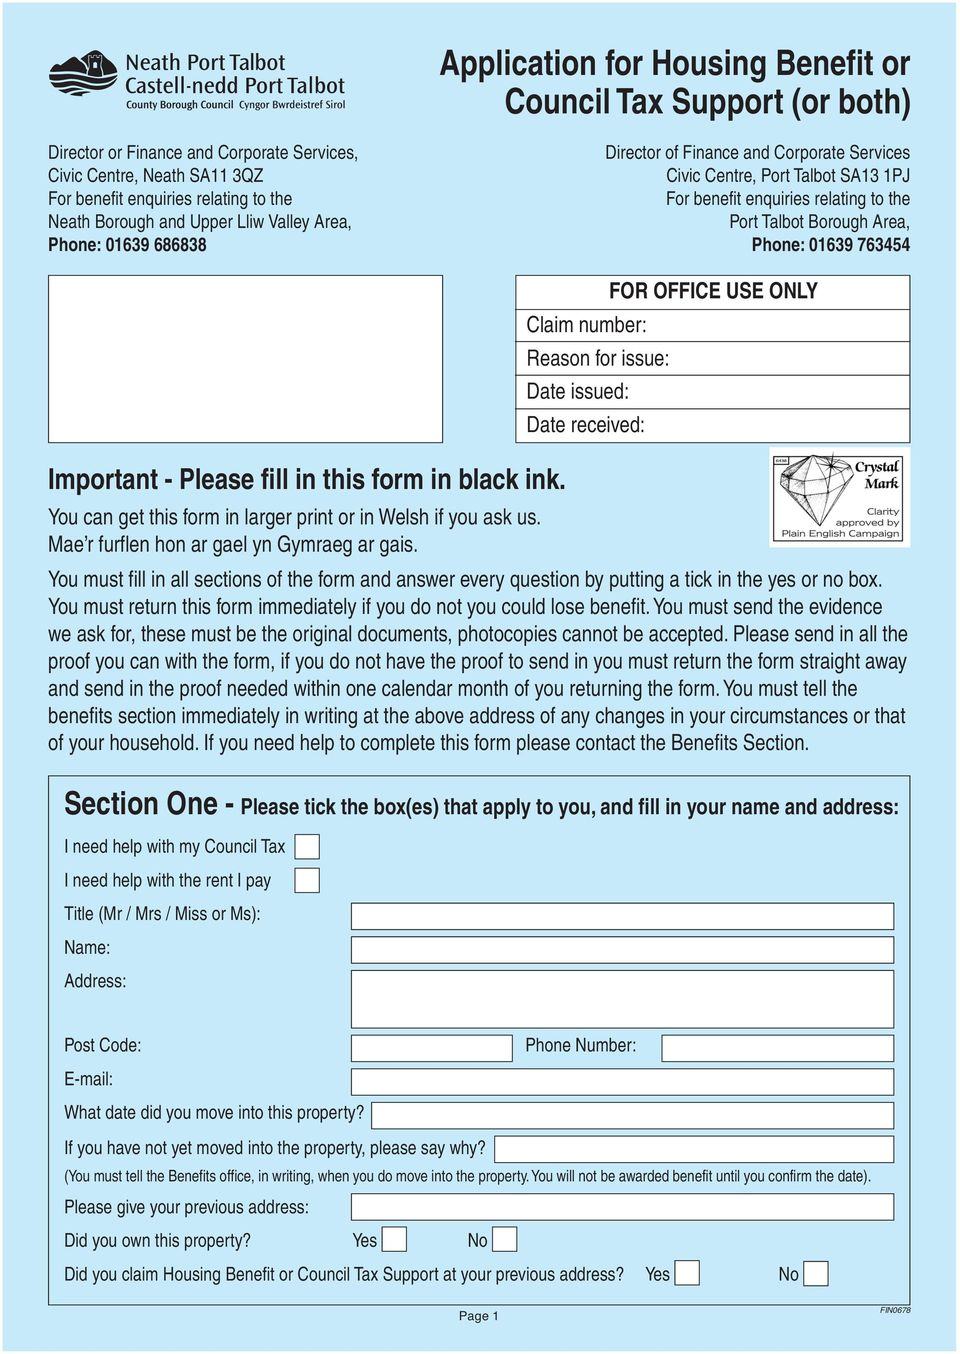 Important - Please fill in this form in black ink. FOR OFFICE USE ONLY Claim number: Reason for issue: Date issued: Date received: can get this form in larger print or in Welsh if you ask us.